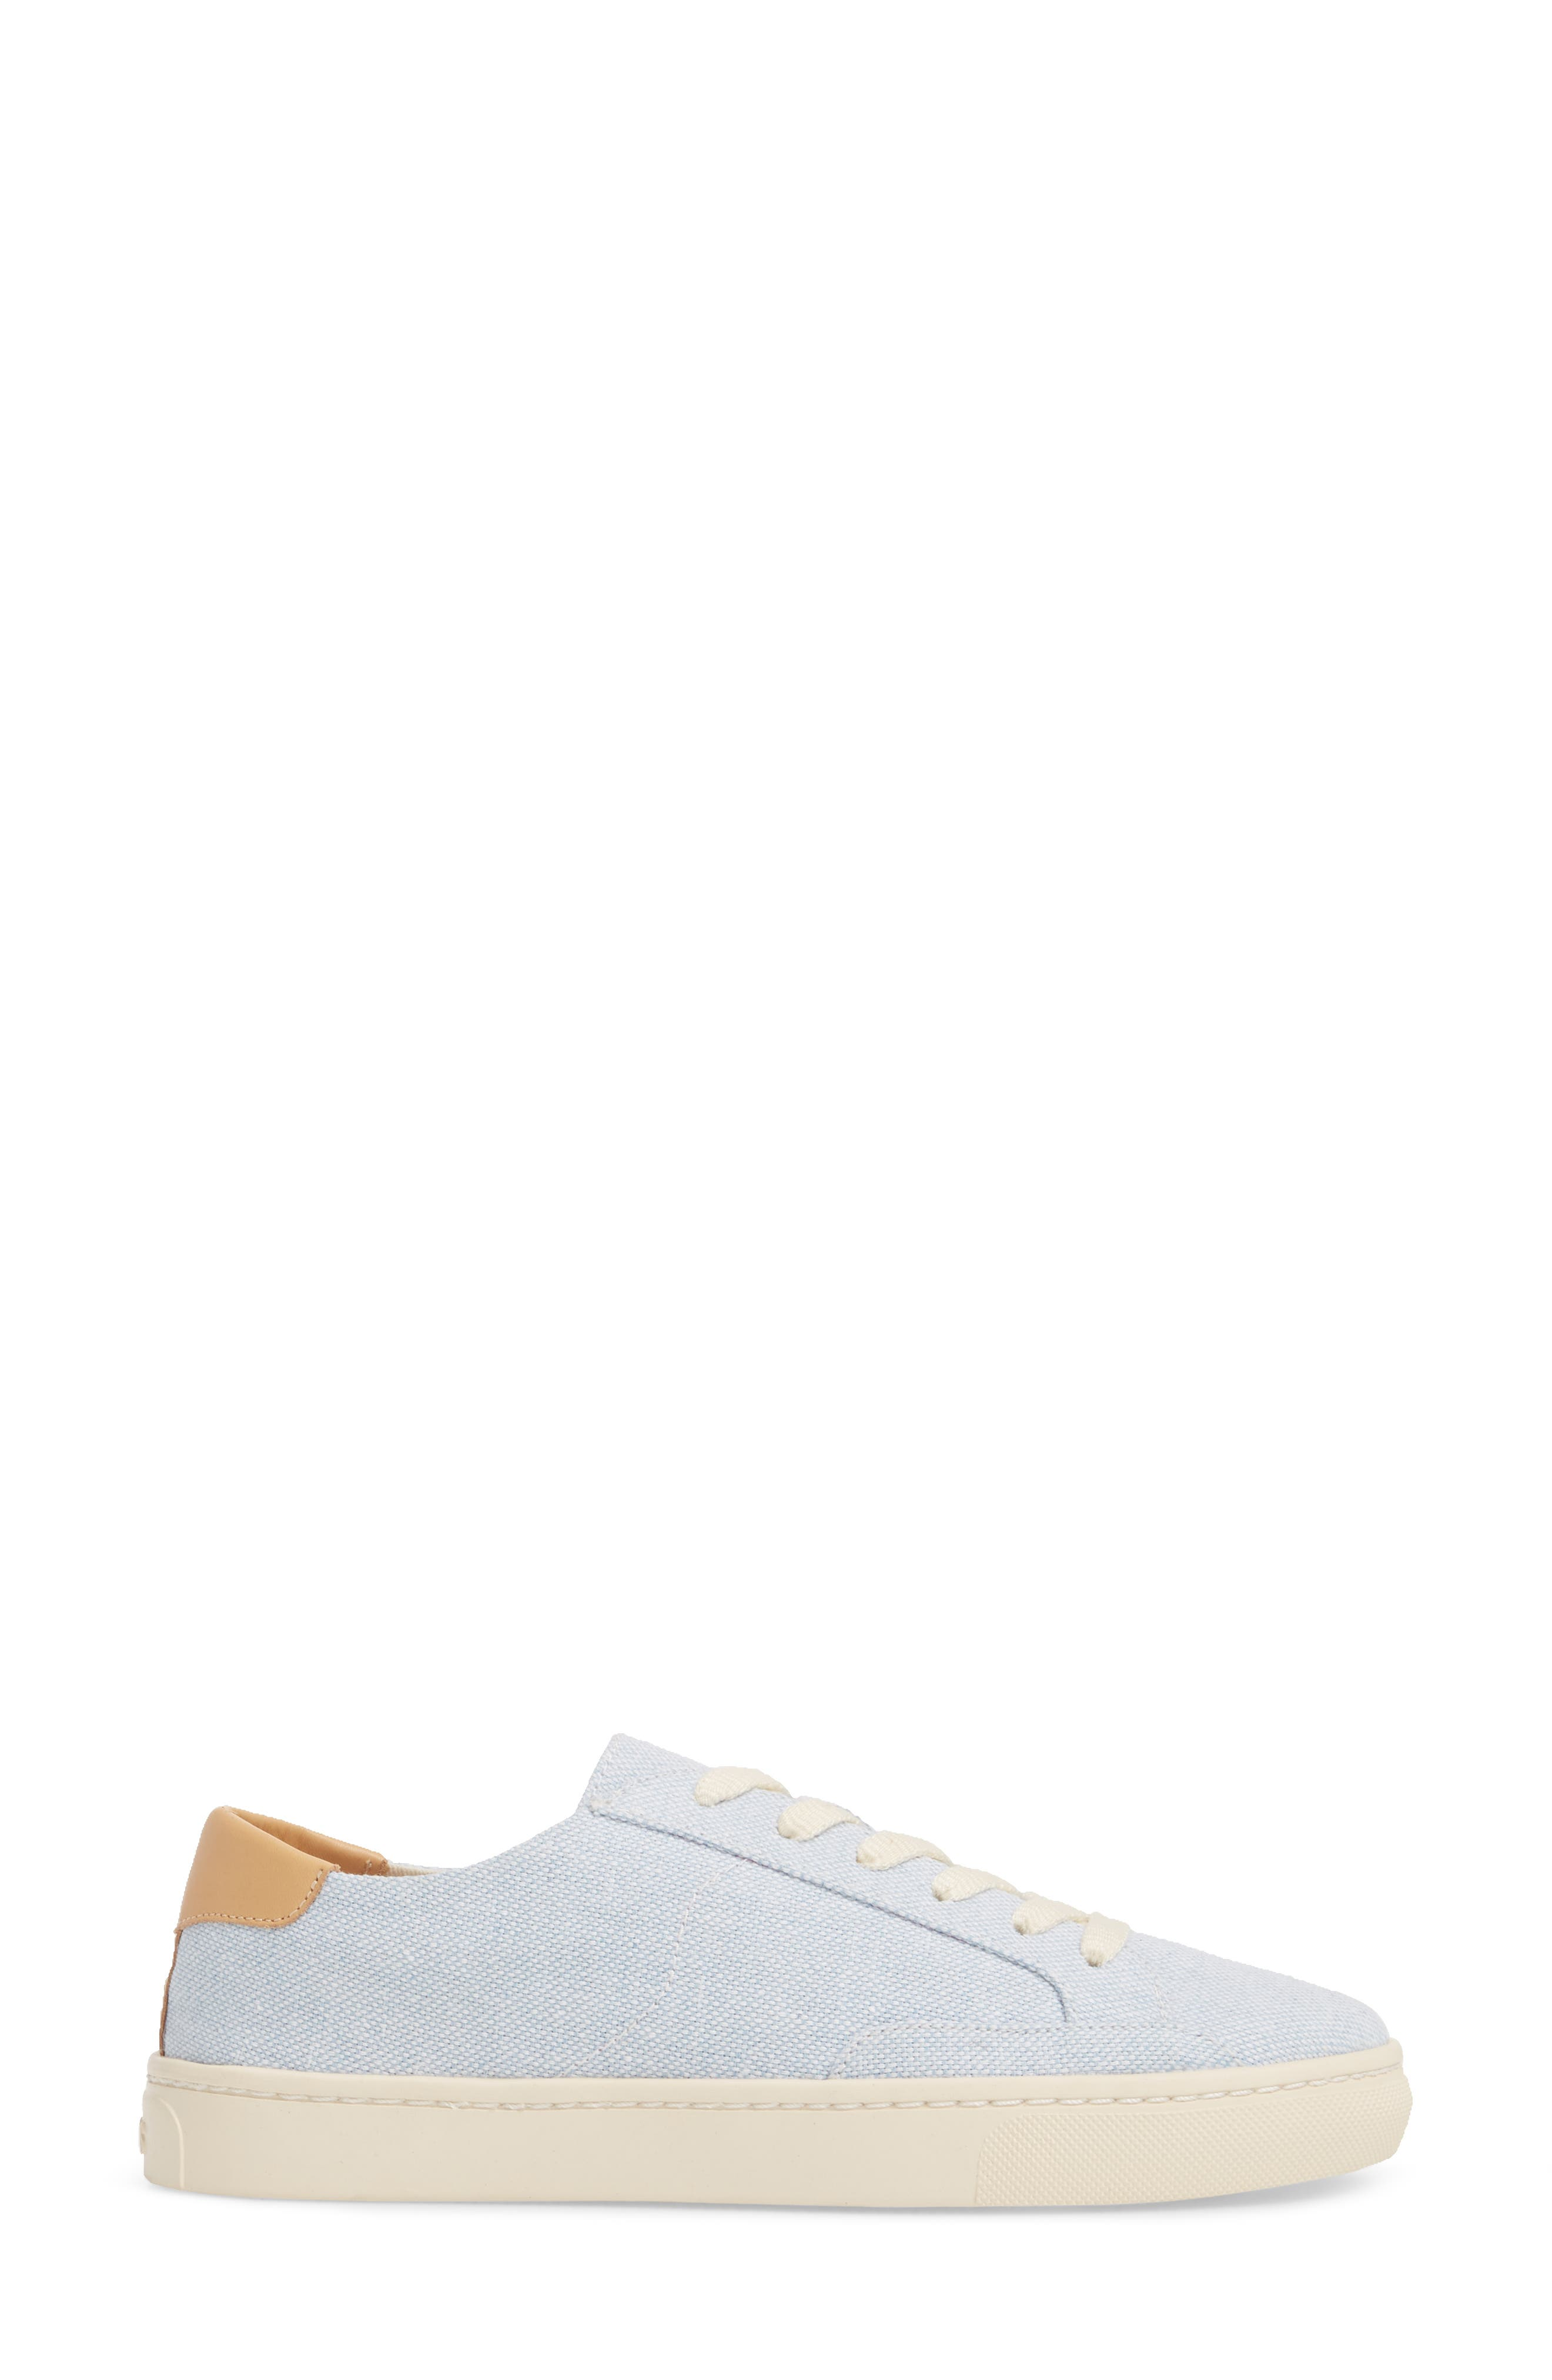 Ibiza Canvas Lace-Up Sneaker,                             Alternate thumbnail 3, color,                             SKY BLUE